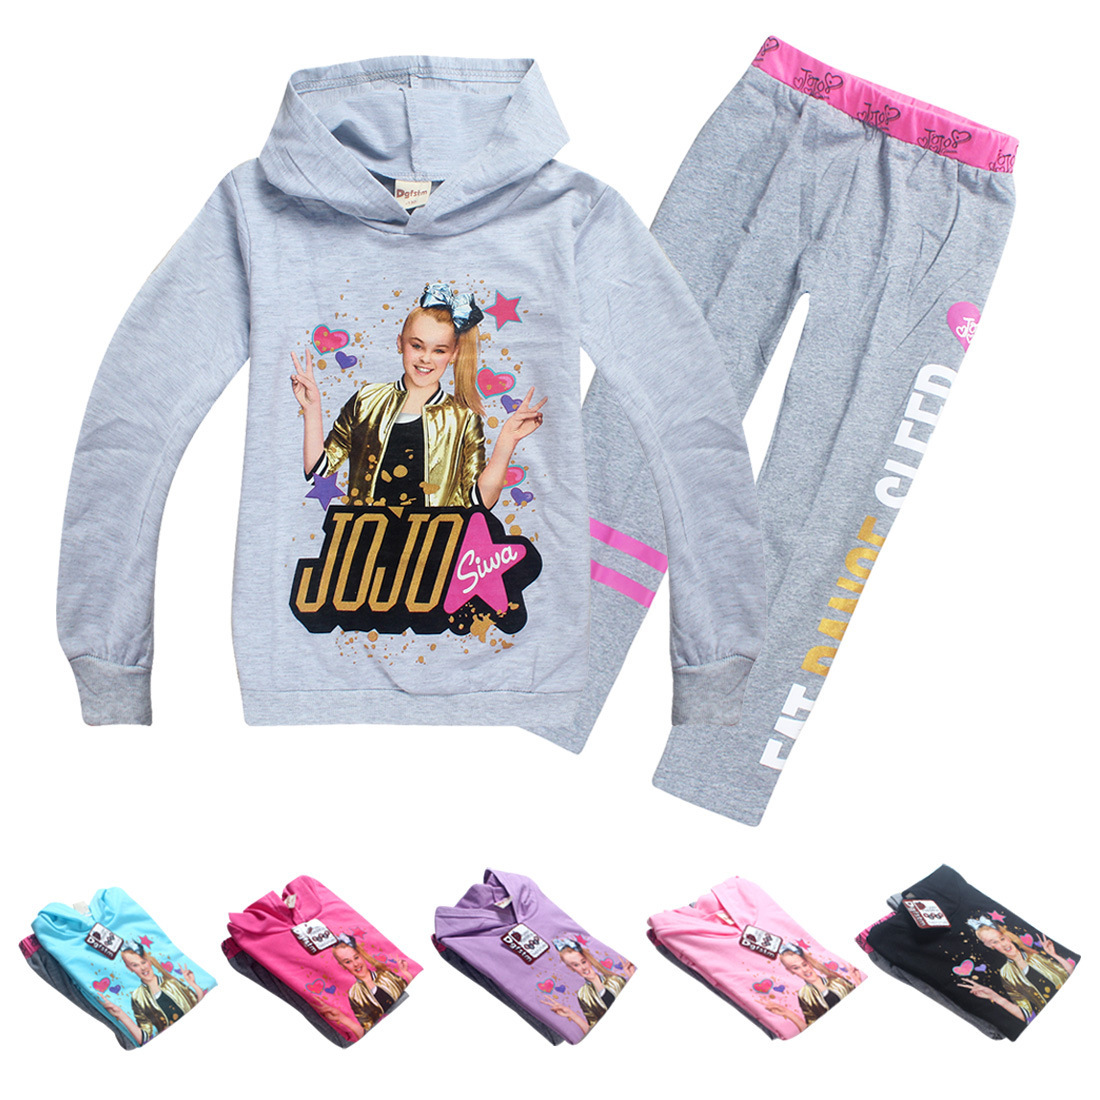 4-12Y kids clothes cartoon jojo siwa print hoodie